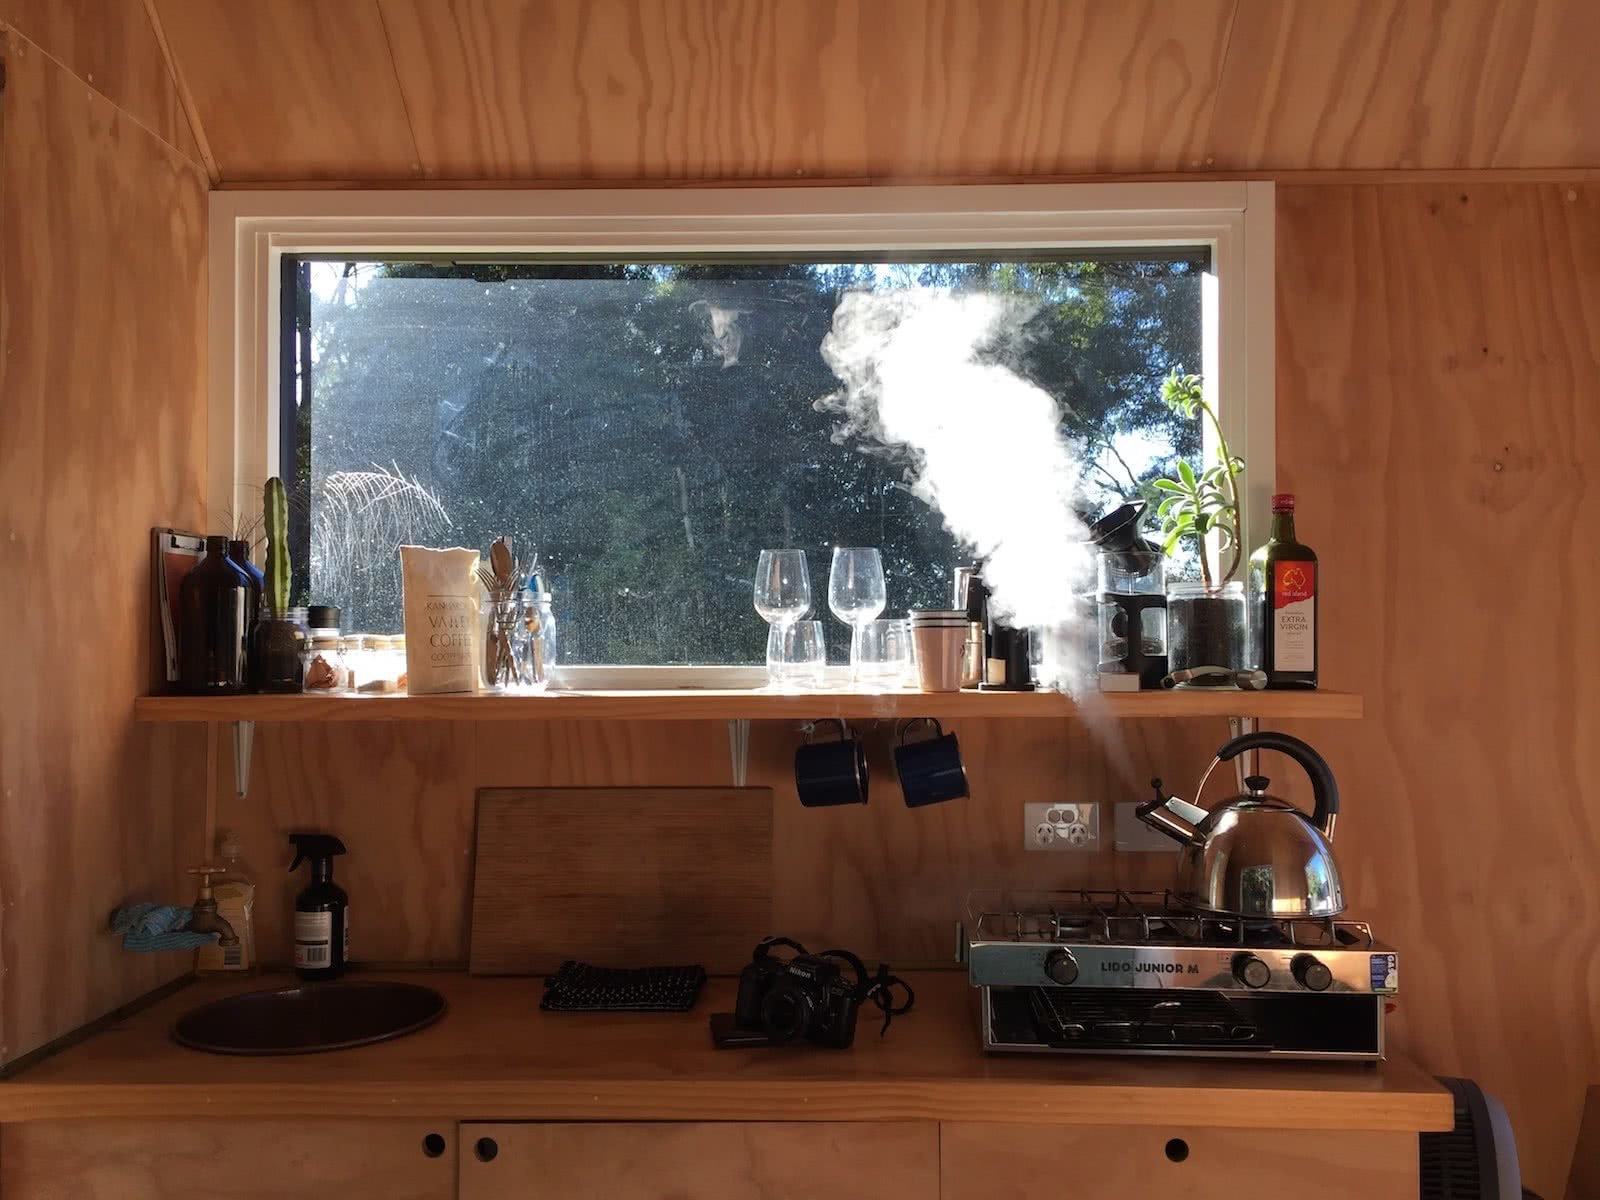 A Notification Vacation // The Cabin Series With Unyoked, photo by Tim Ashelford, miguel, unyoked cabin, coffee, kettle, steam